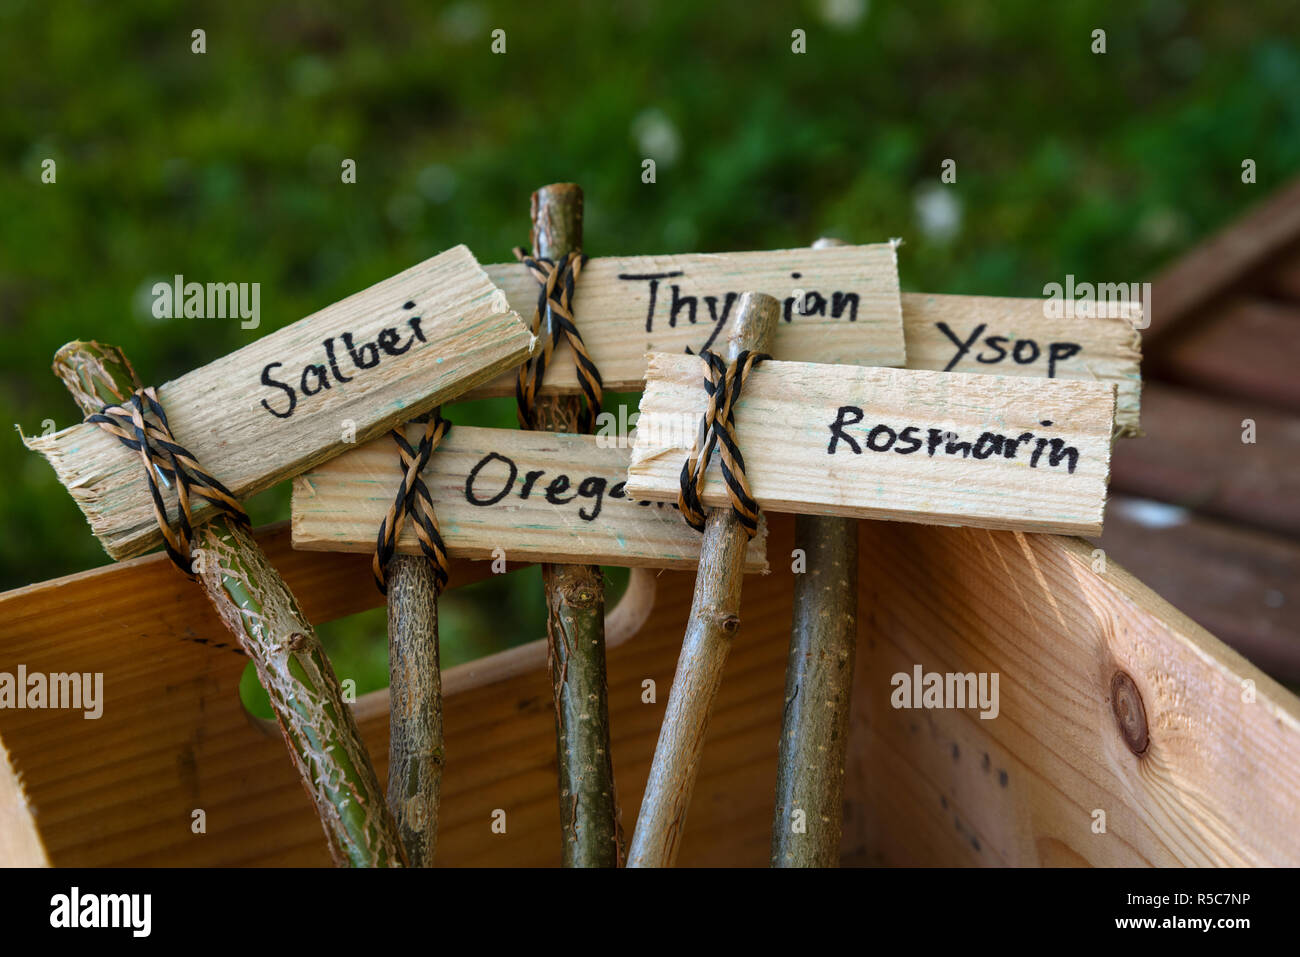 creative wooden plant markers, labeled with german names for sage